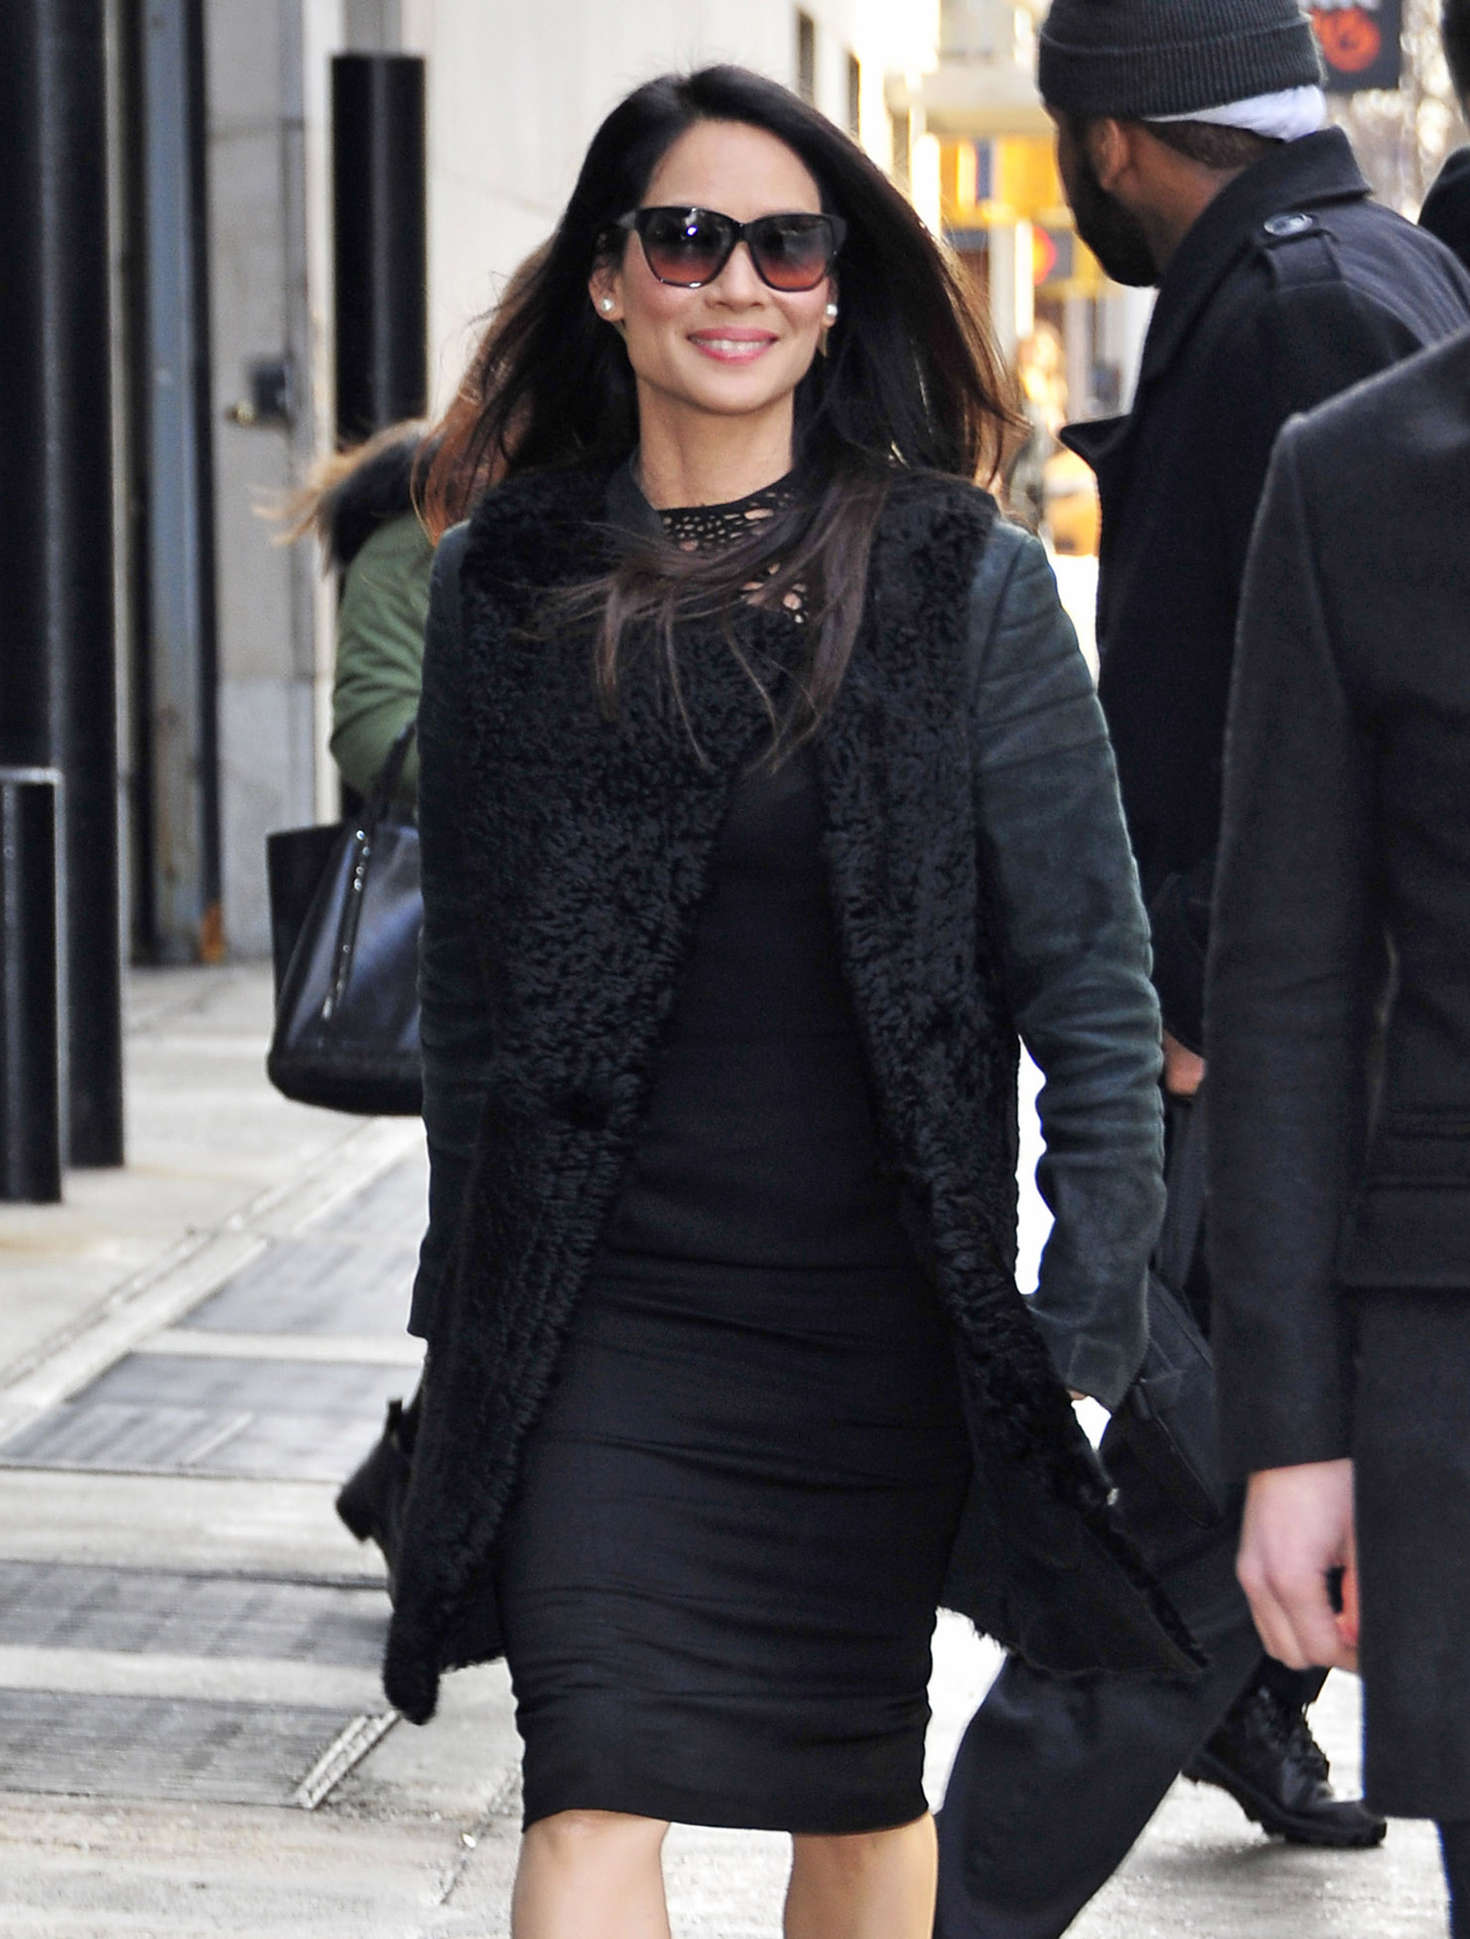 Lucy Liu in Black Dress out in New York City